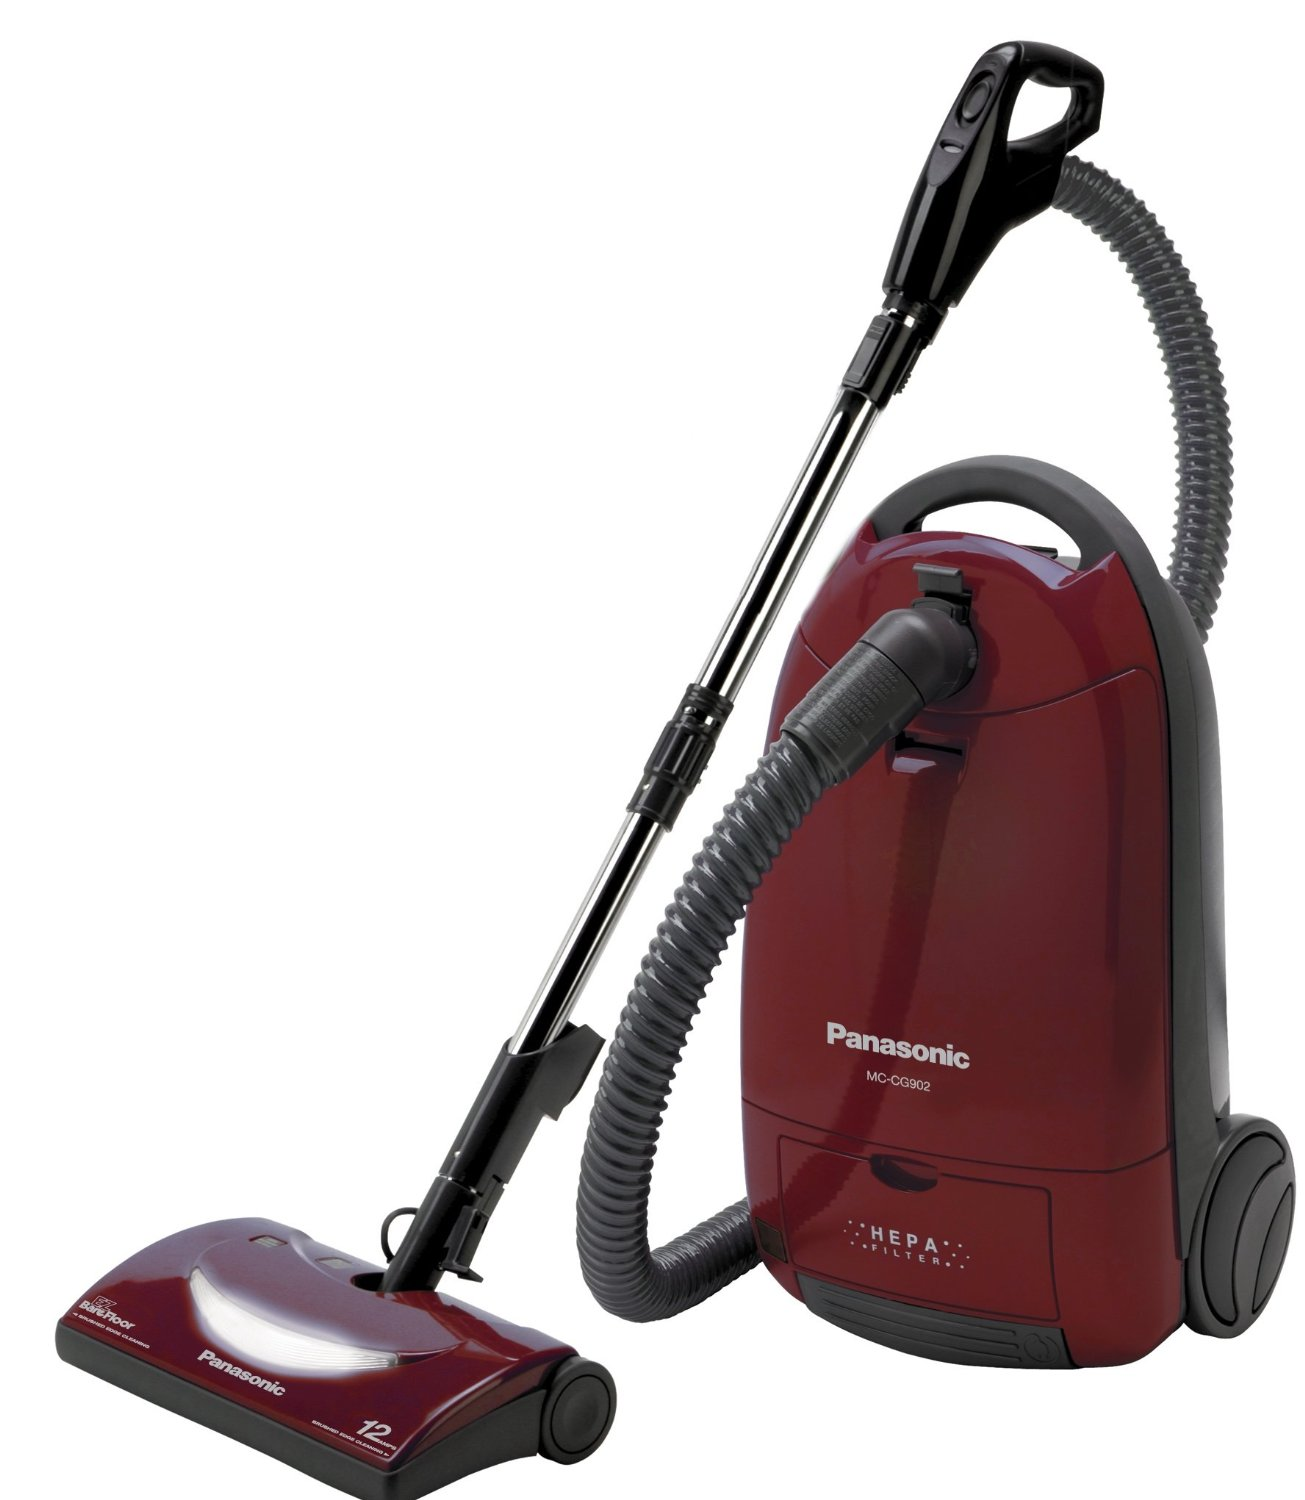 Panasonic MC-CG902 Full Size Bag Canister Vacuum Cleaner